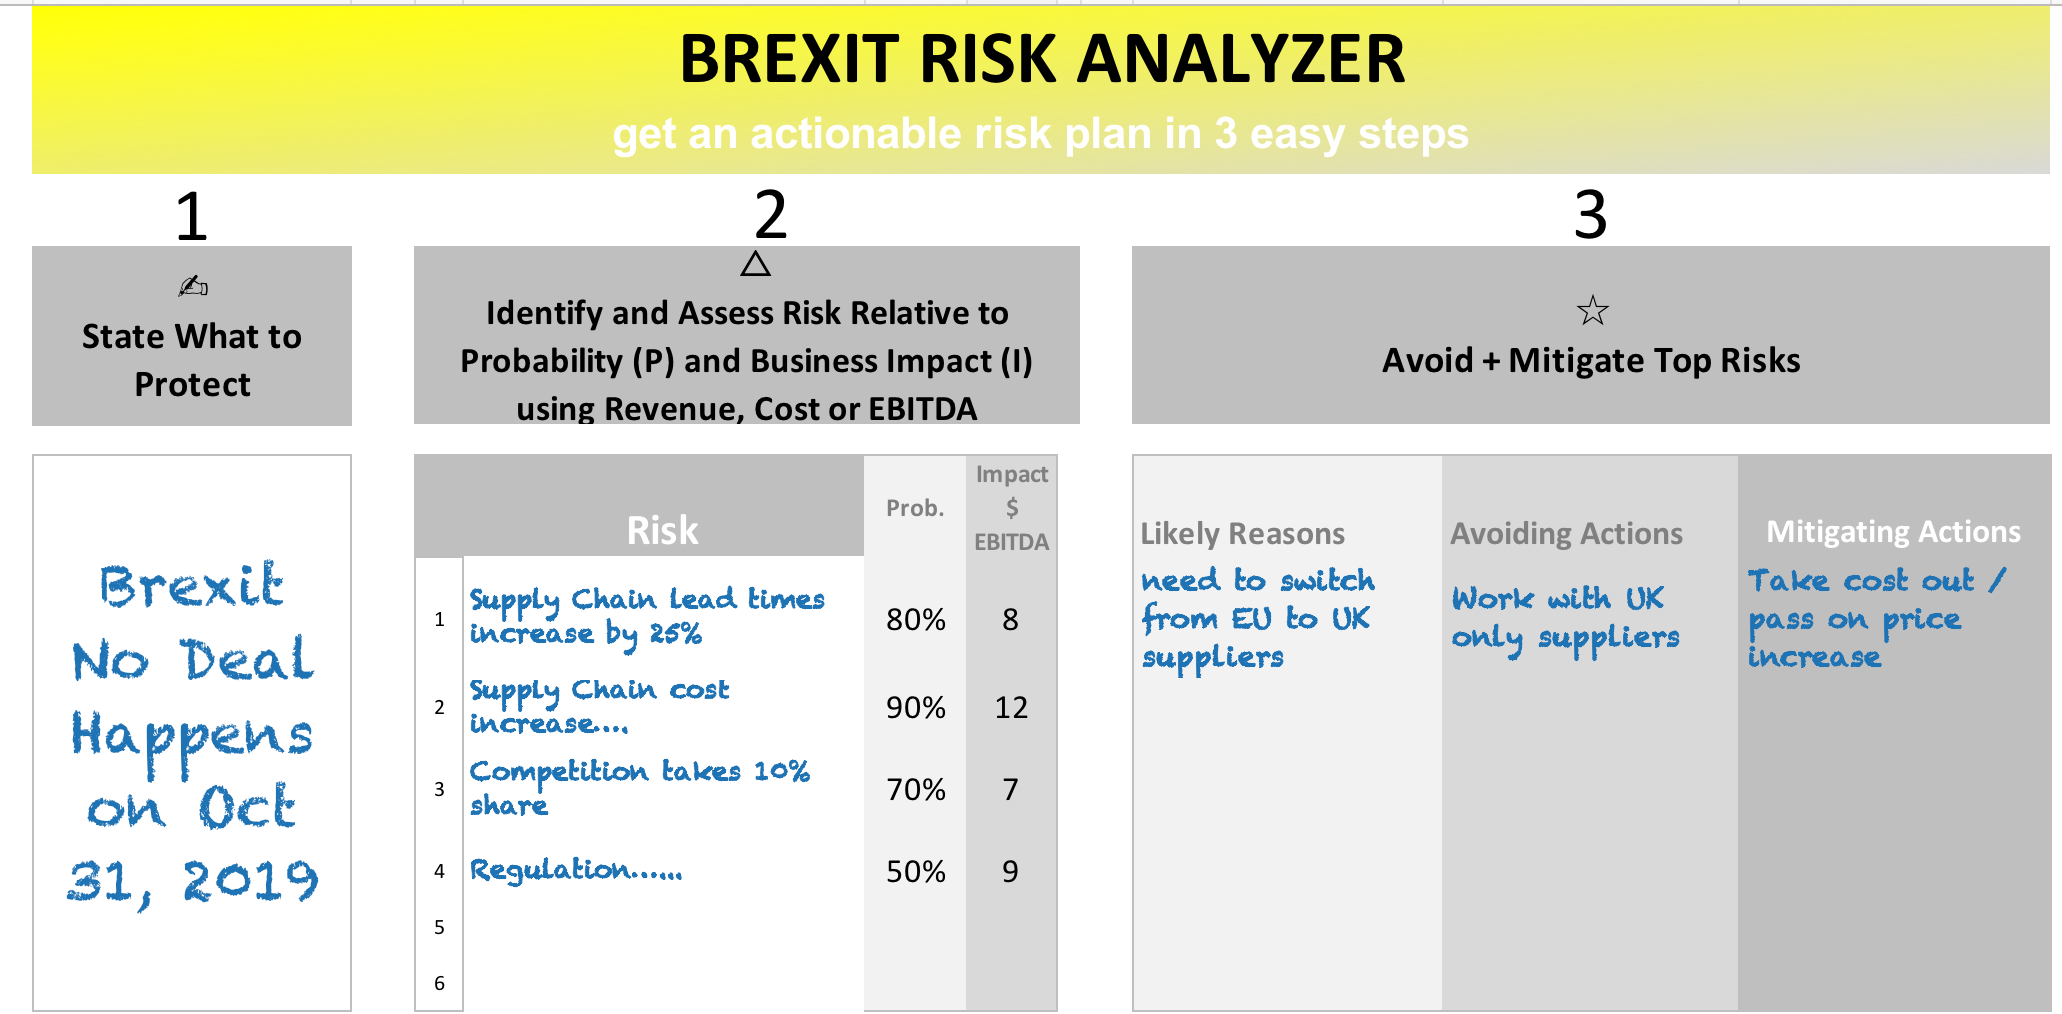 Brexit Blog Risk